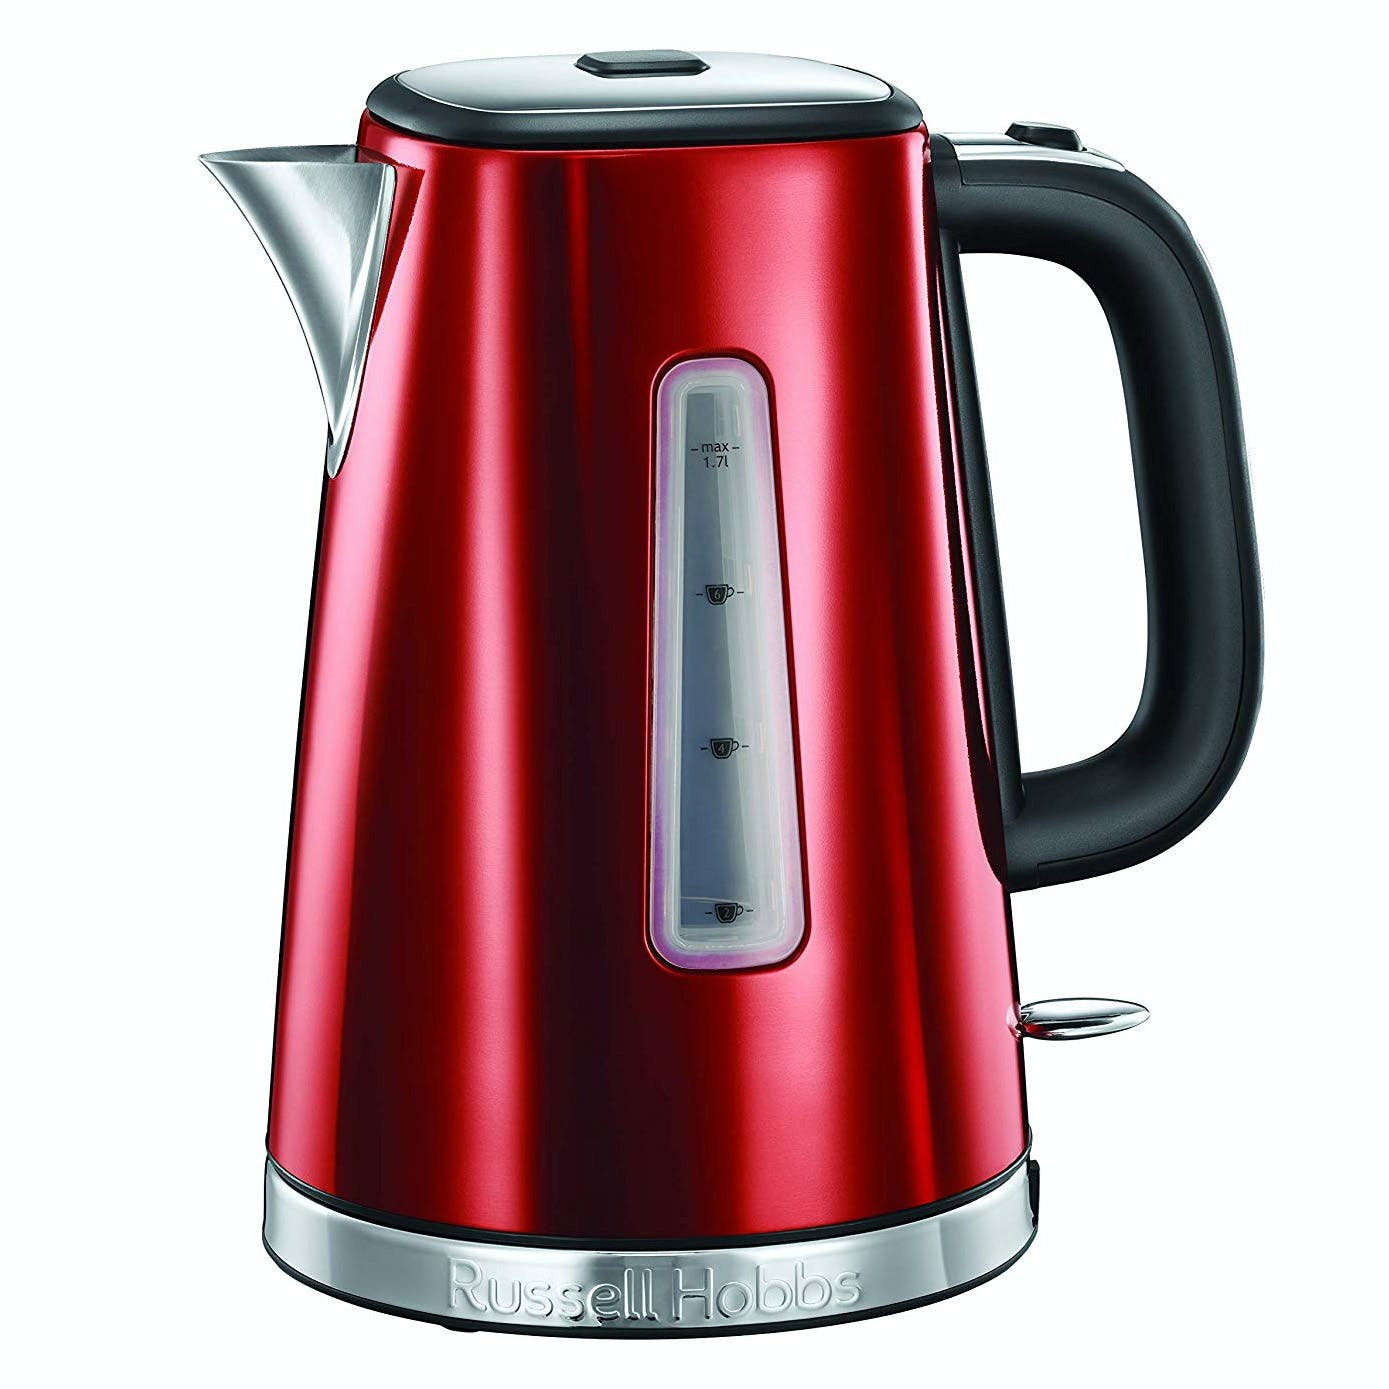 Russell Hobbs 23210 LUNA 1.7 Litre Kettle in Red, 3.0 kW Quiet boil